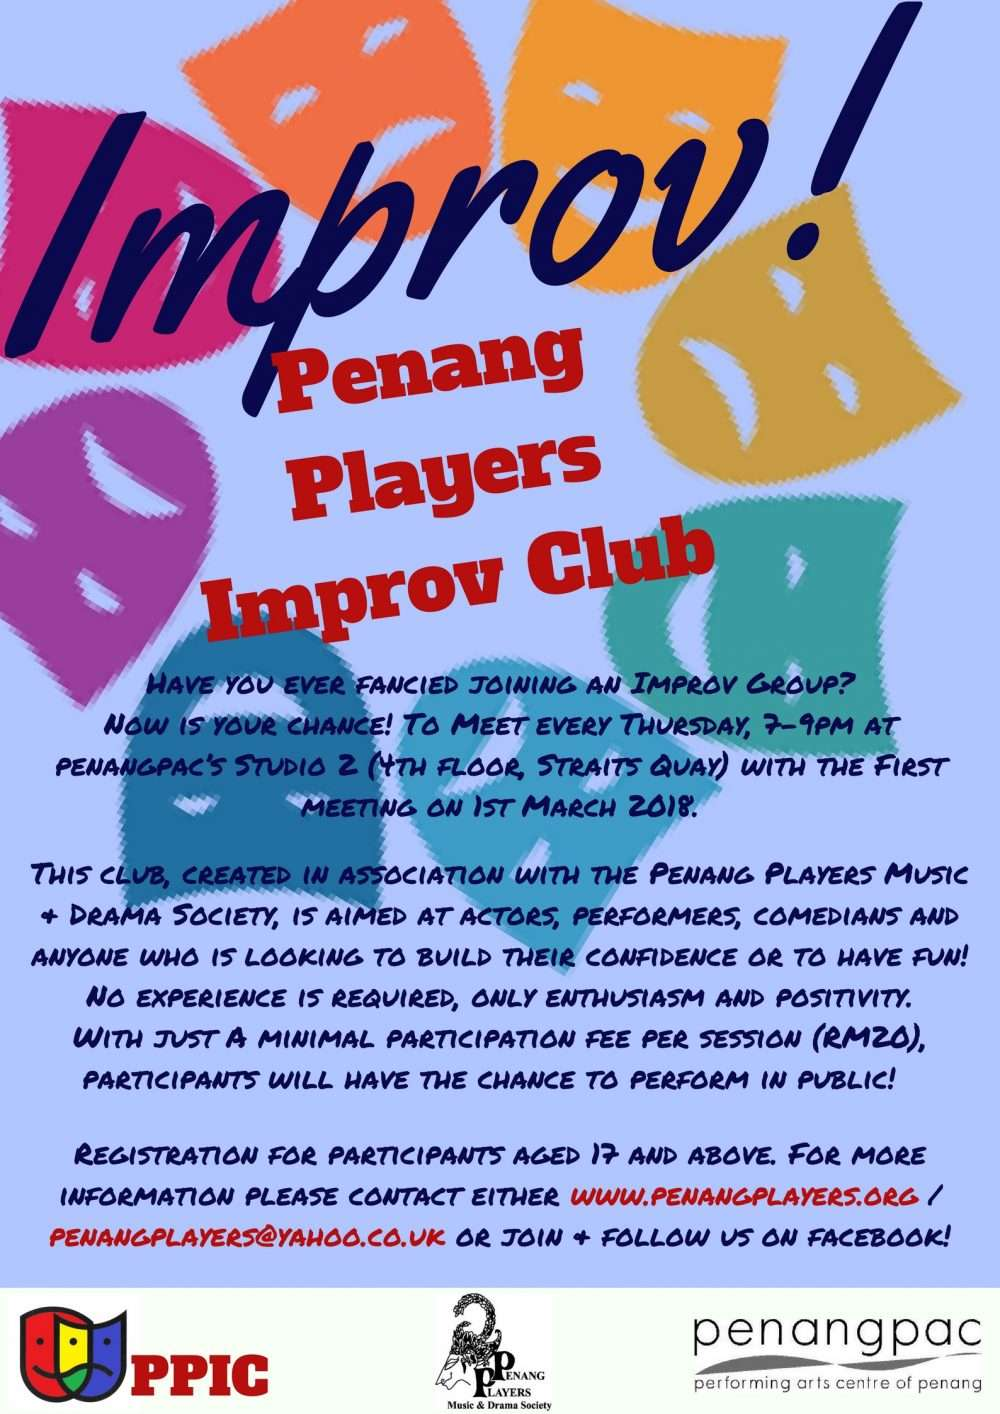 Penang Players Improc Club Flyer